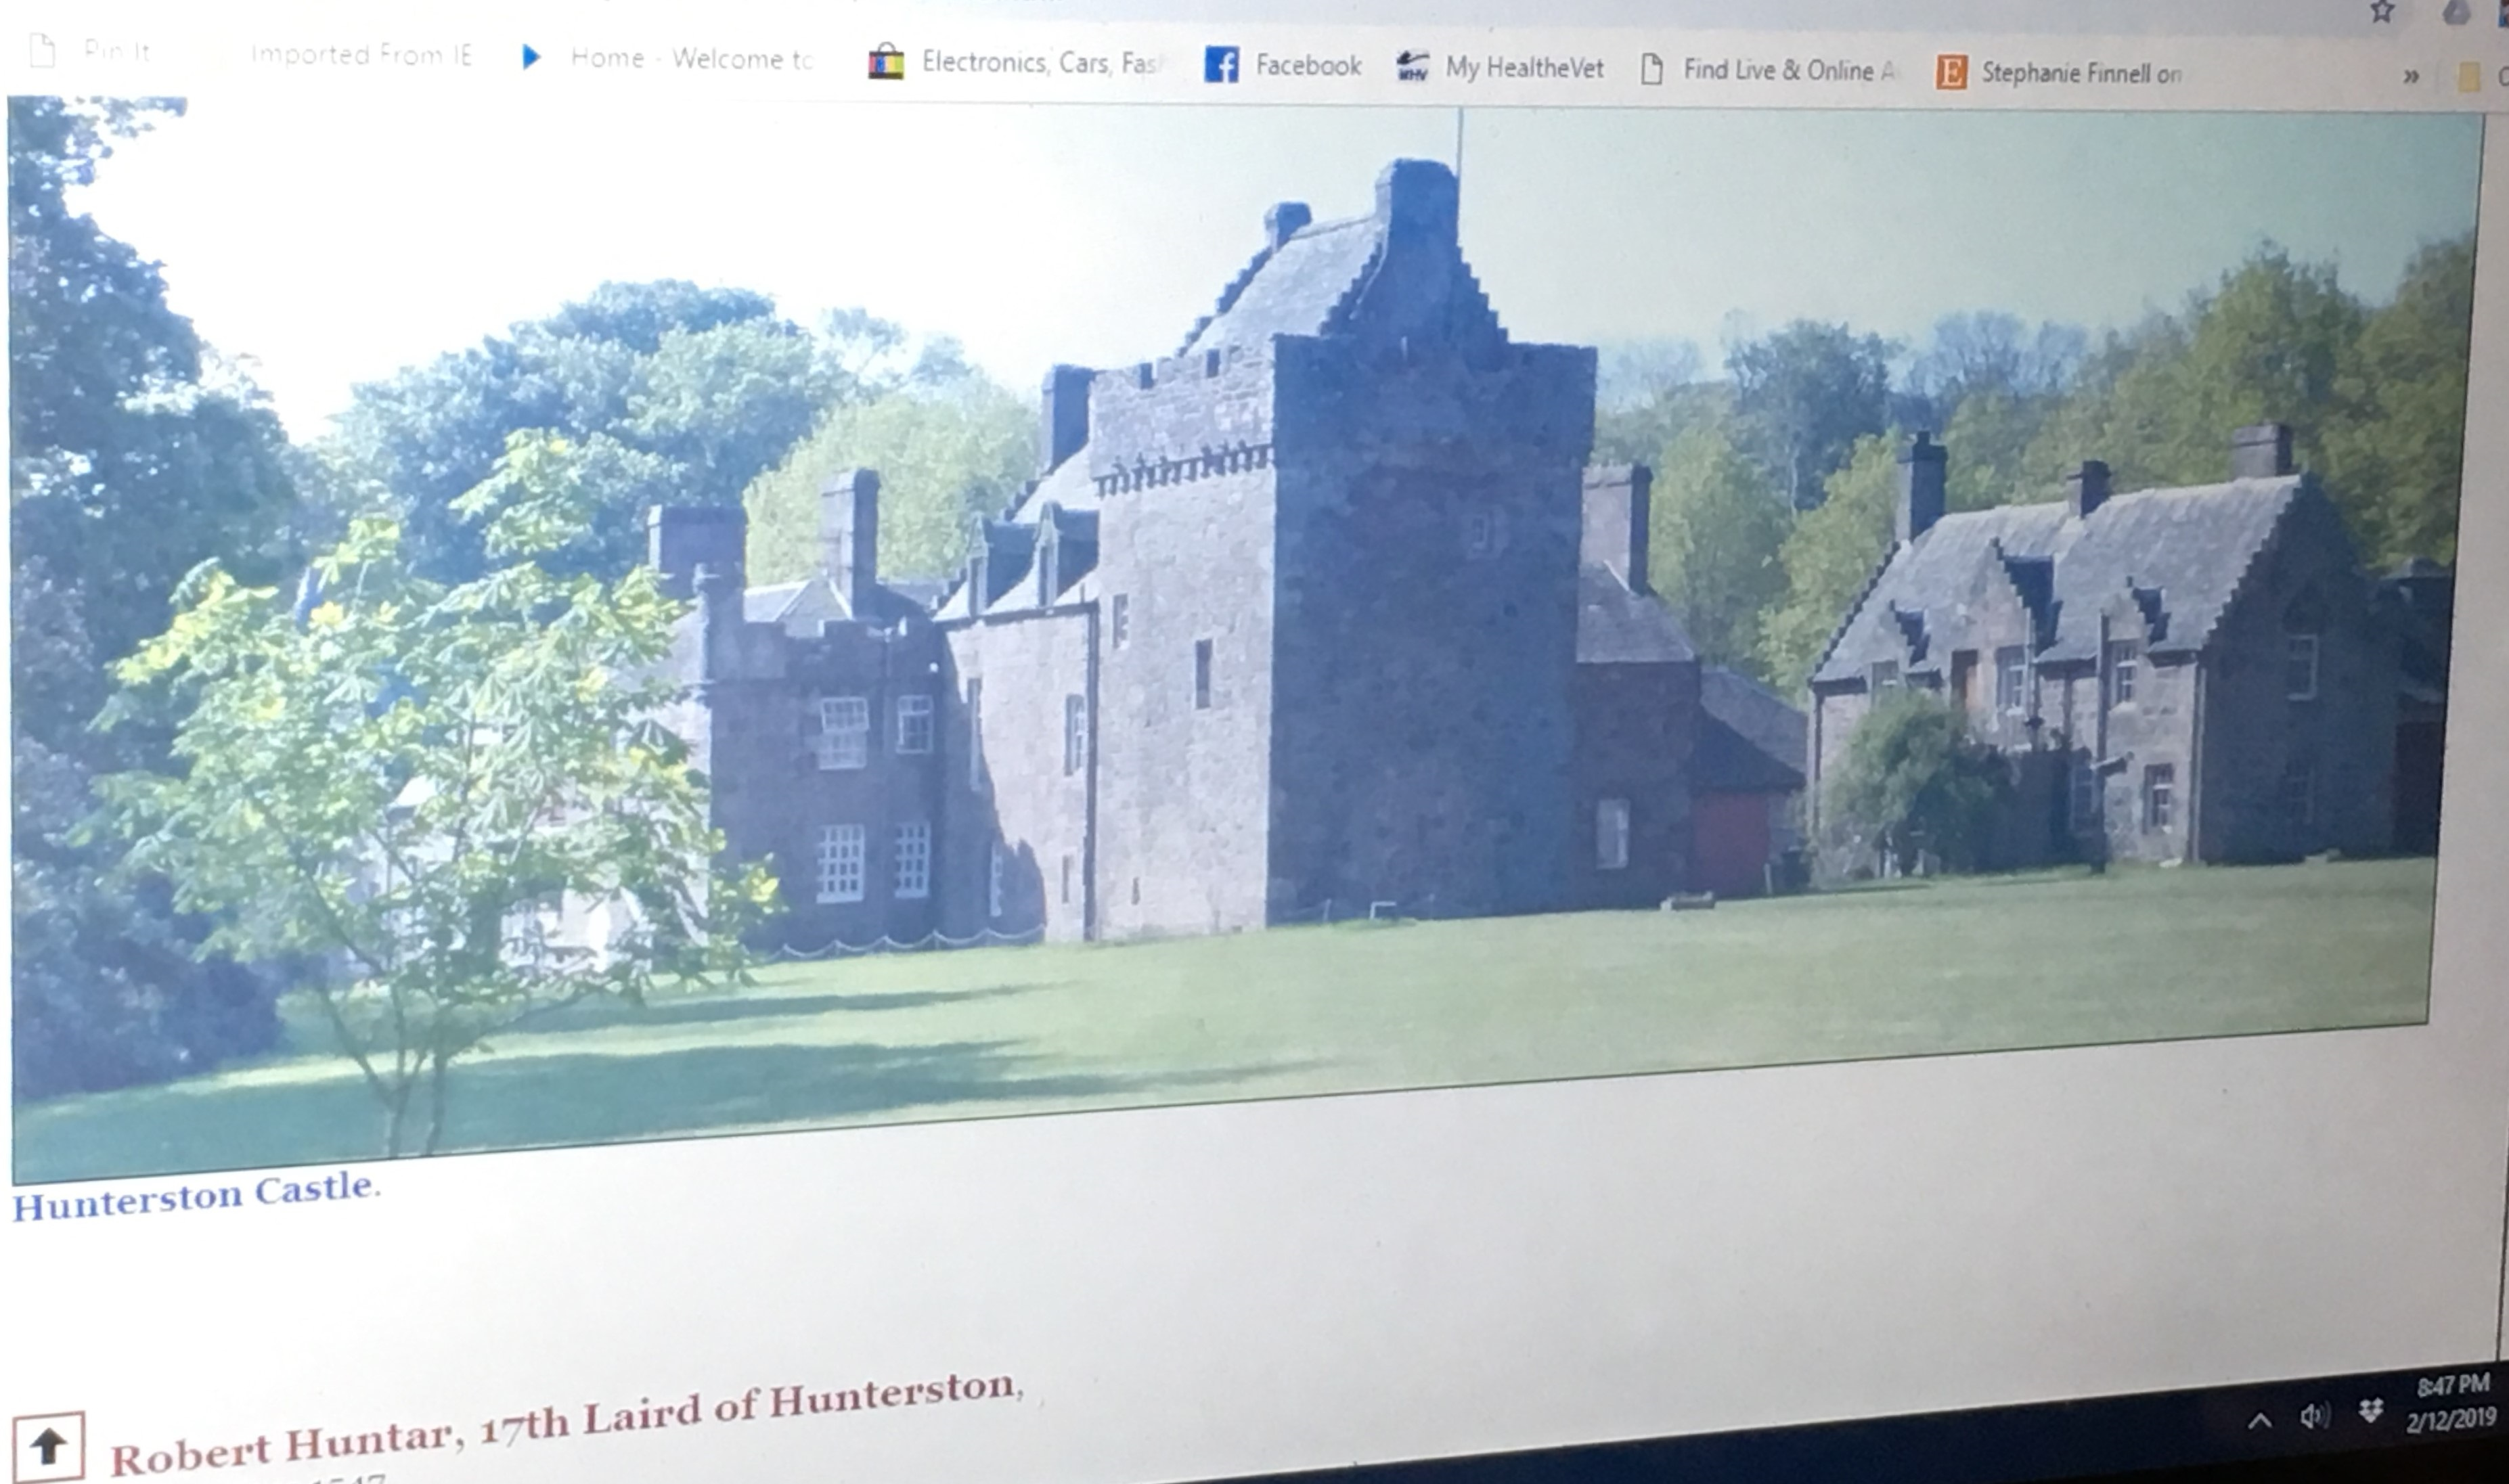 Hunterston Castle in Scotland is still standing!